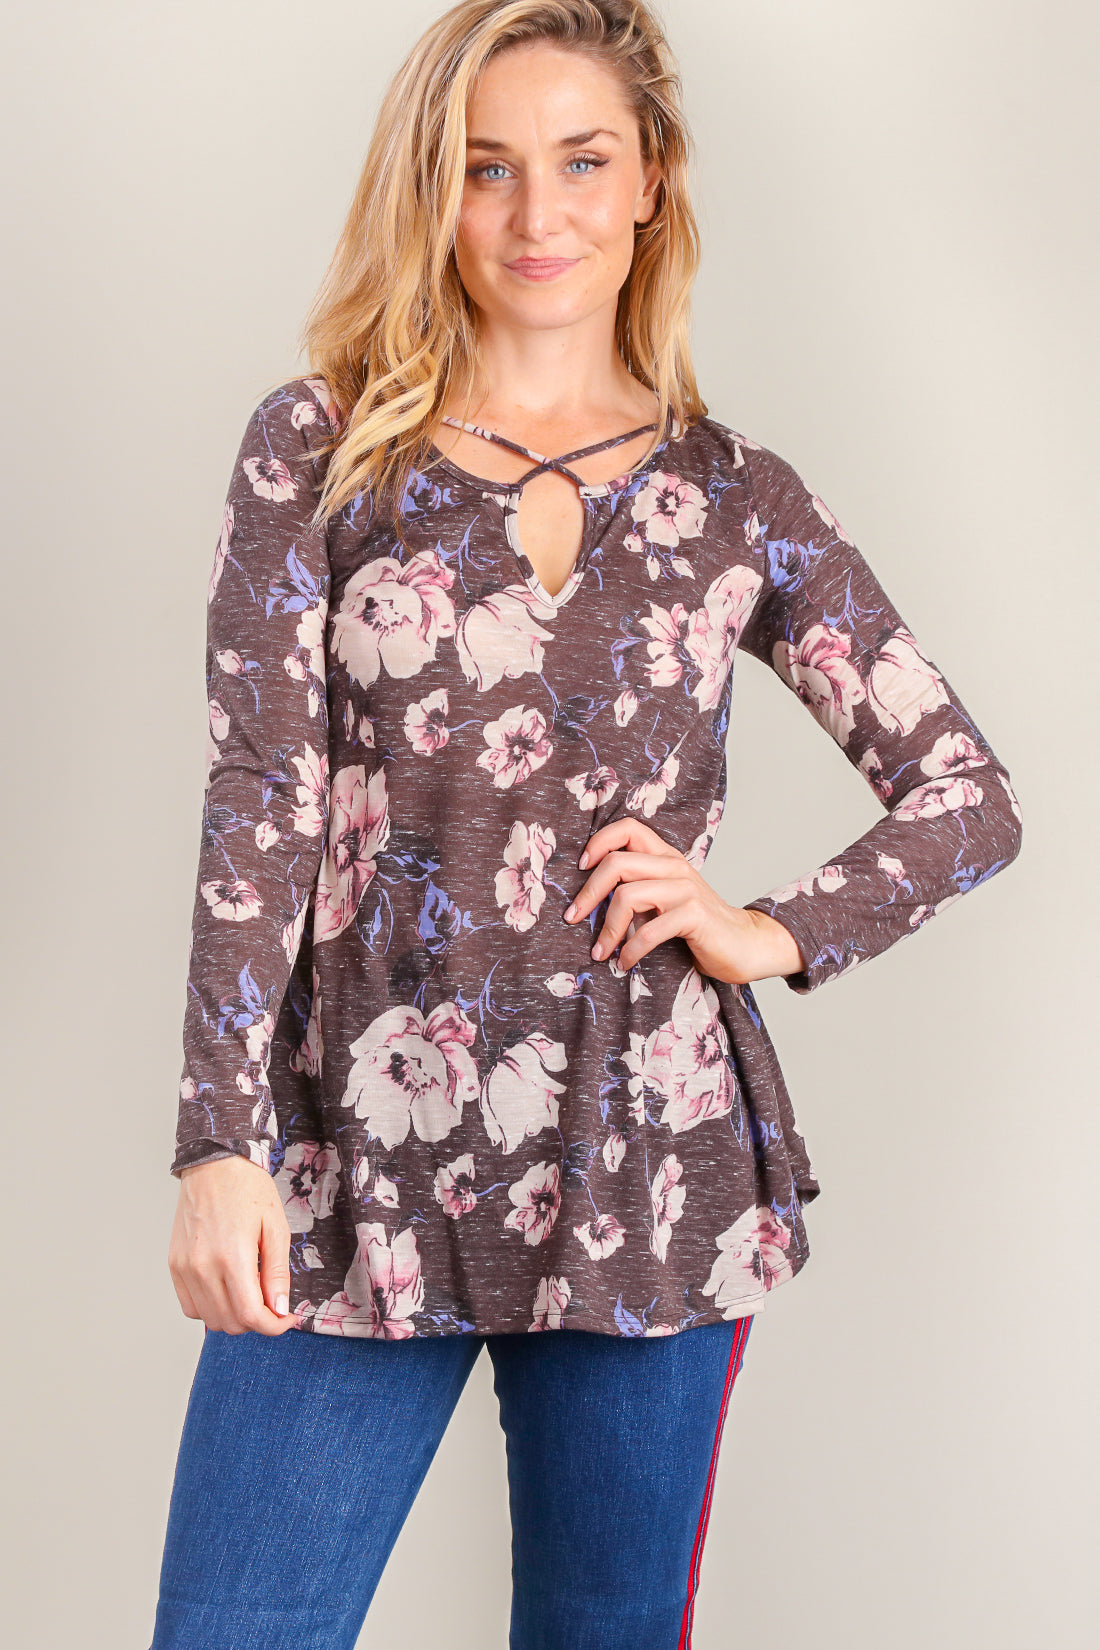 Charcoal Floral Panel Design Blouse